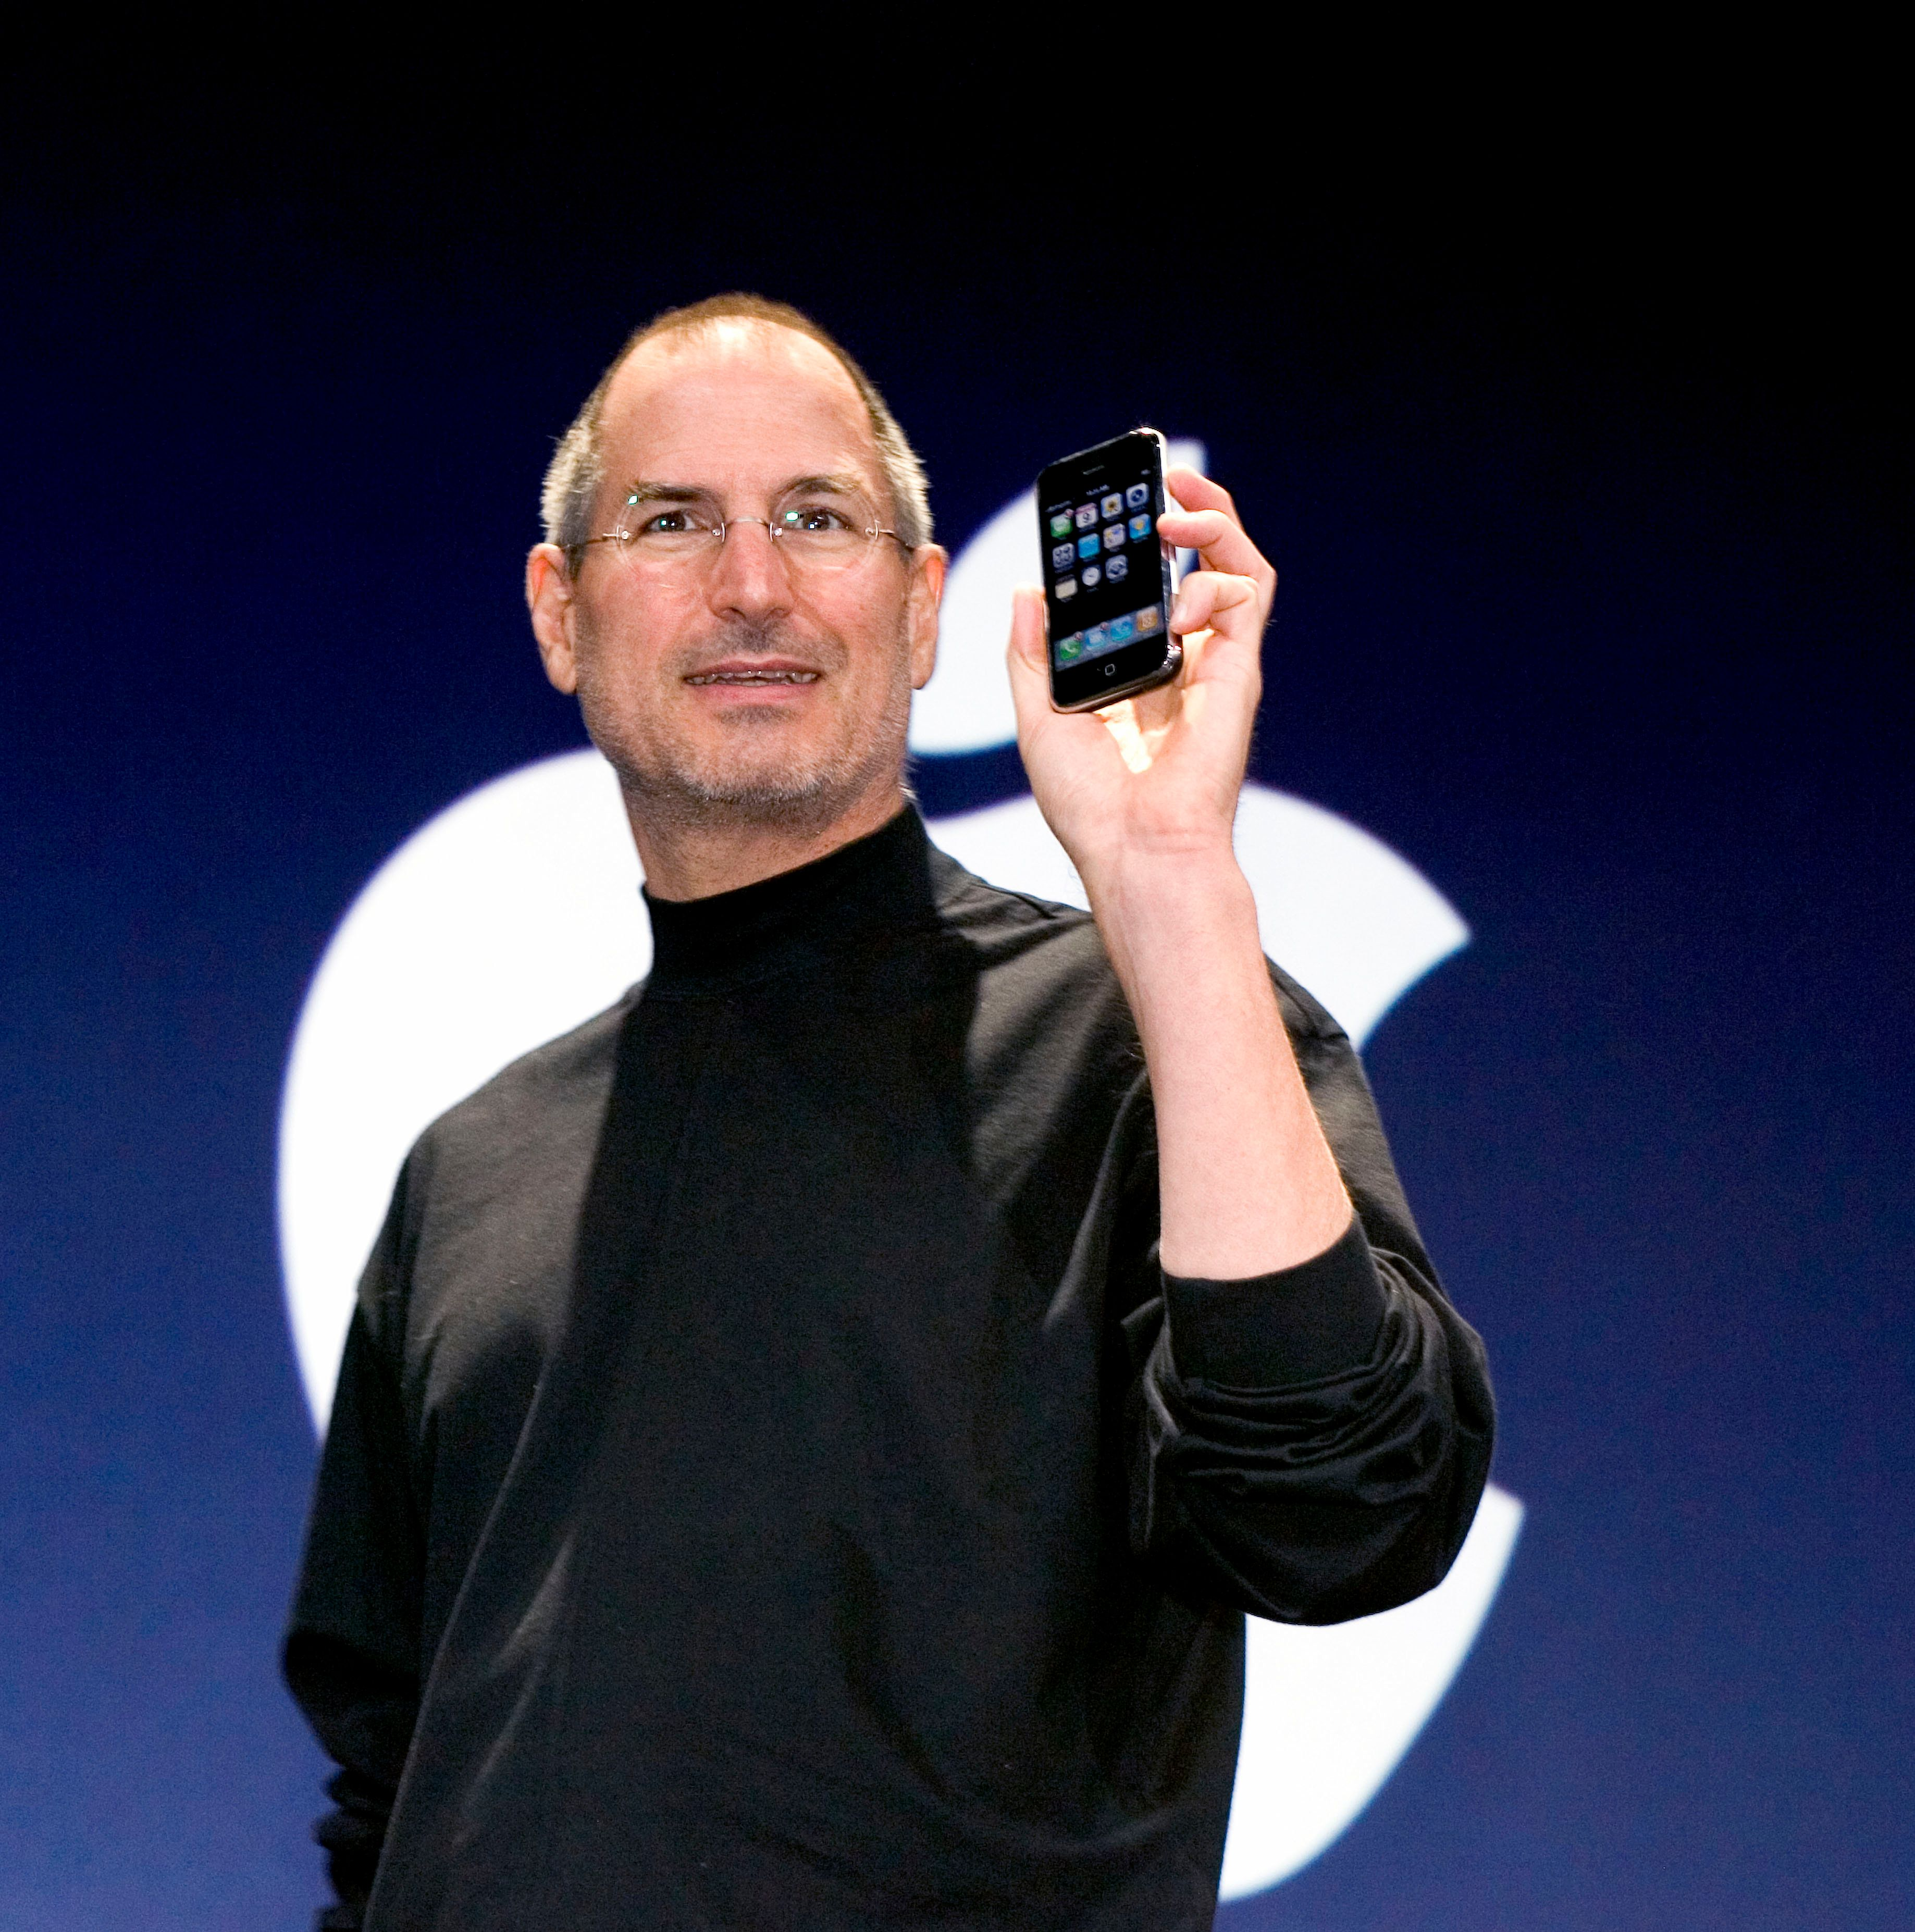 How The iPhone Transformed The Way We Interact With The